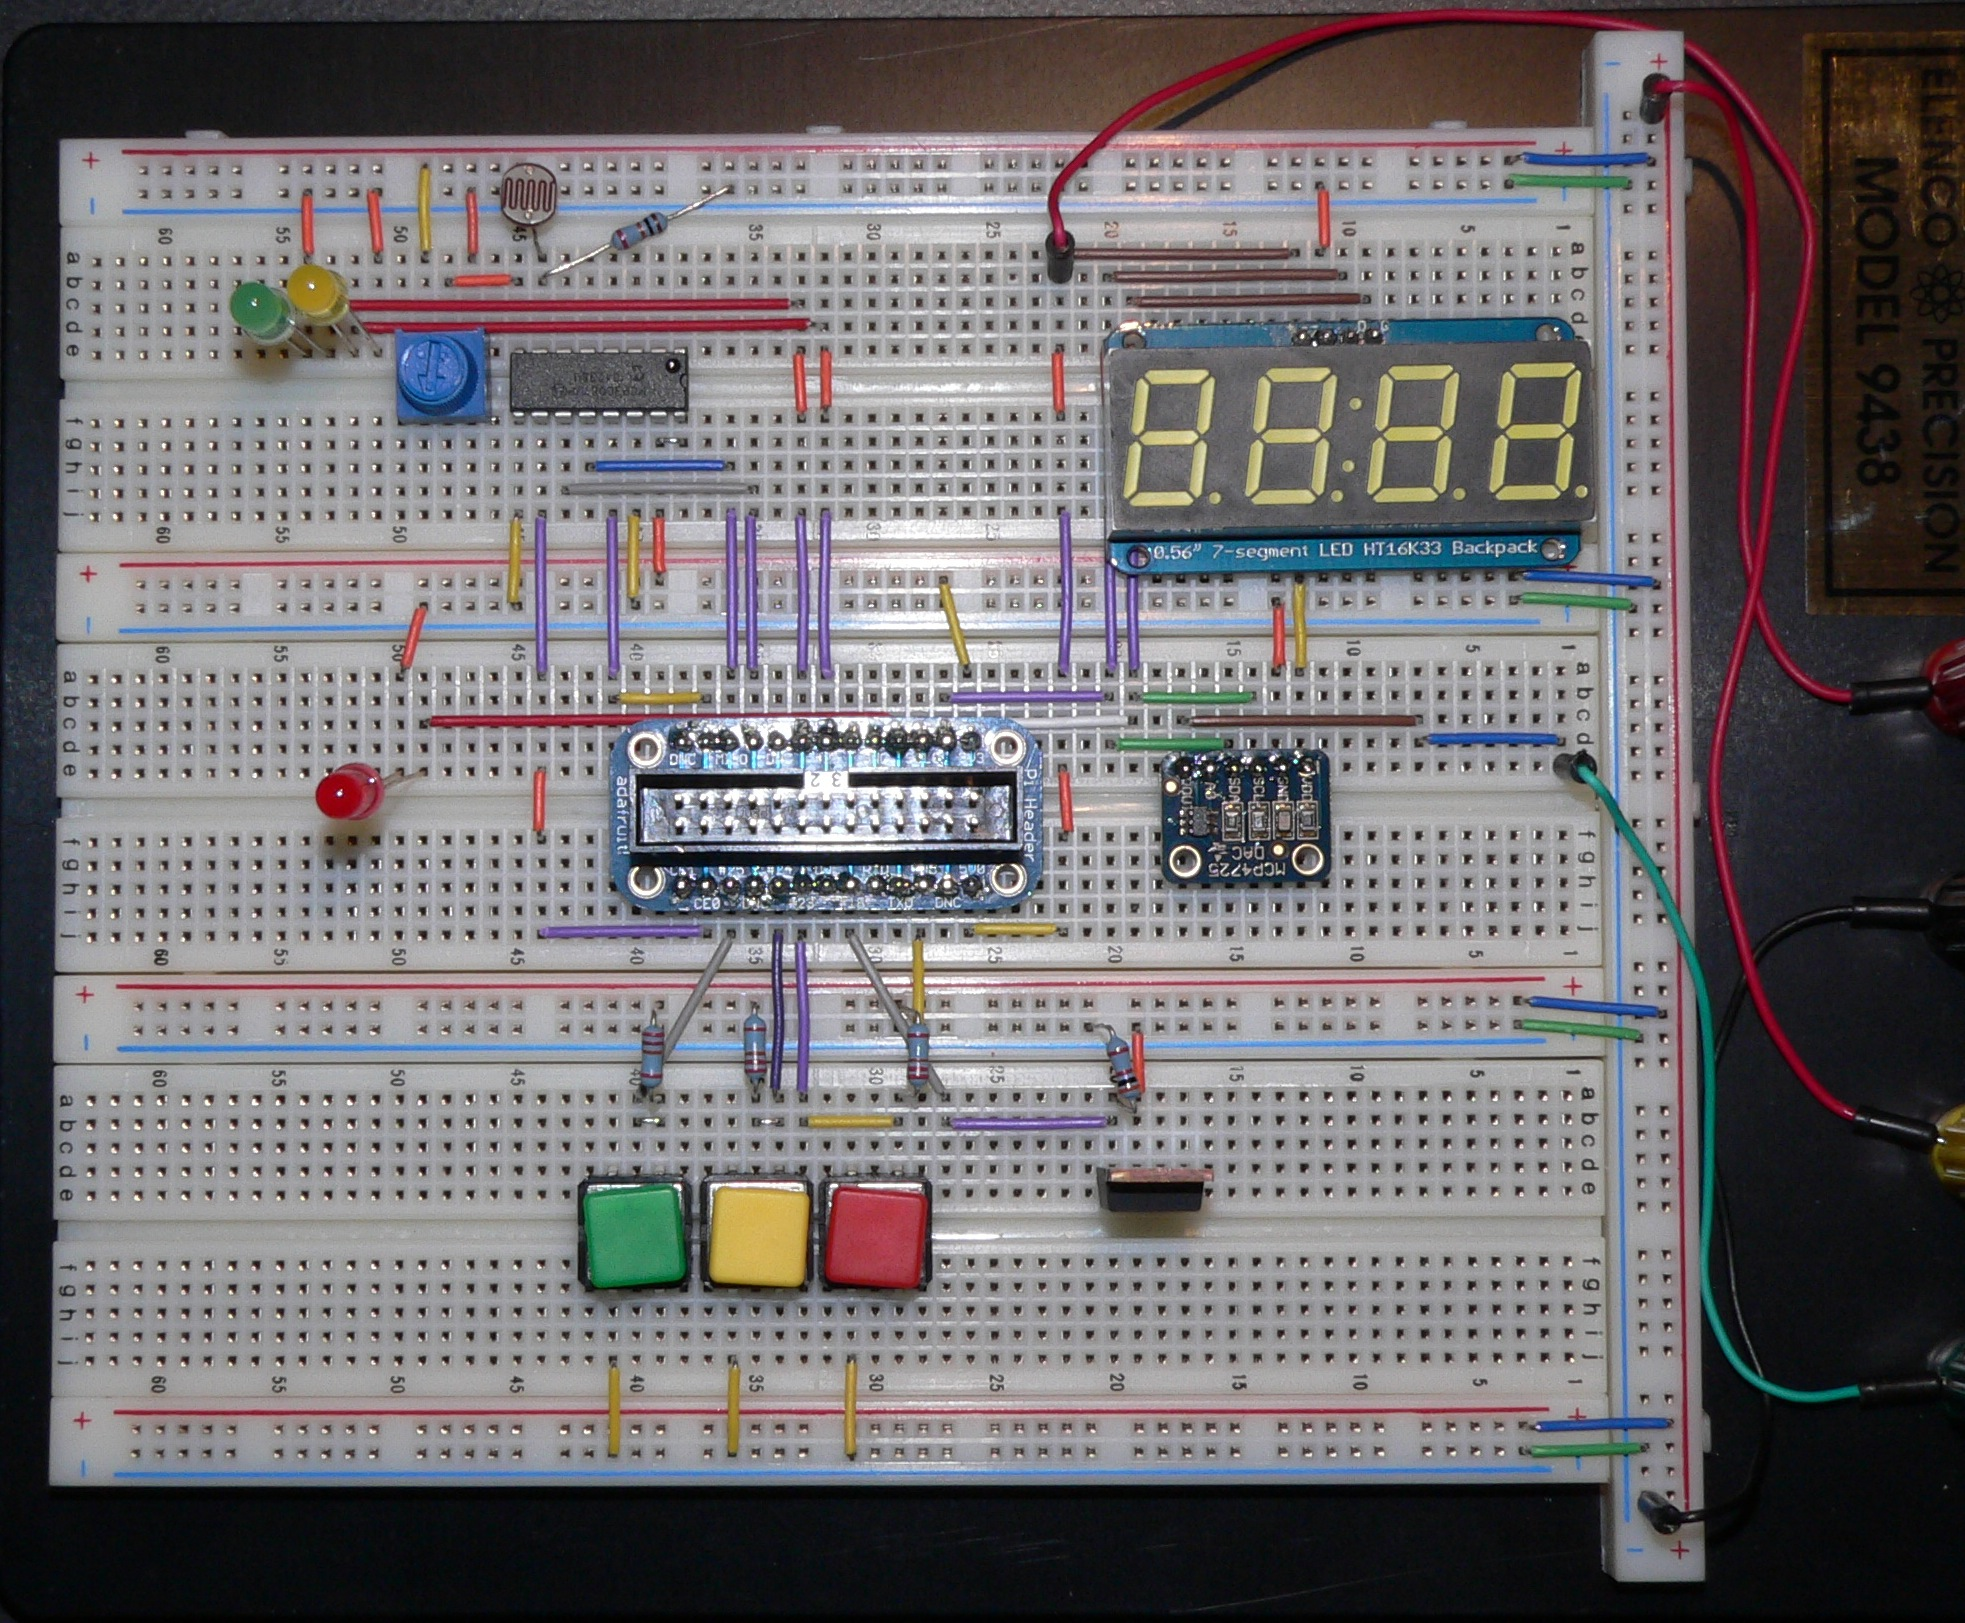 My Breadboard, with a few extra components